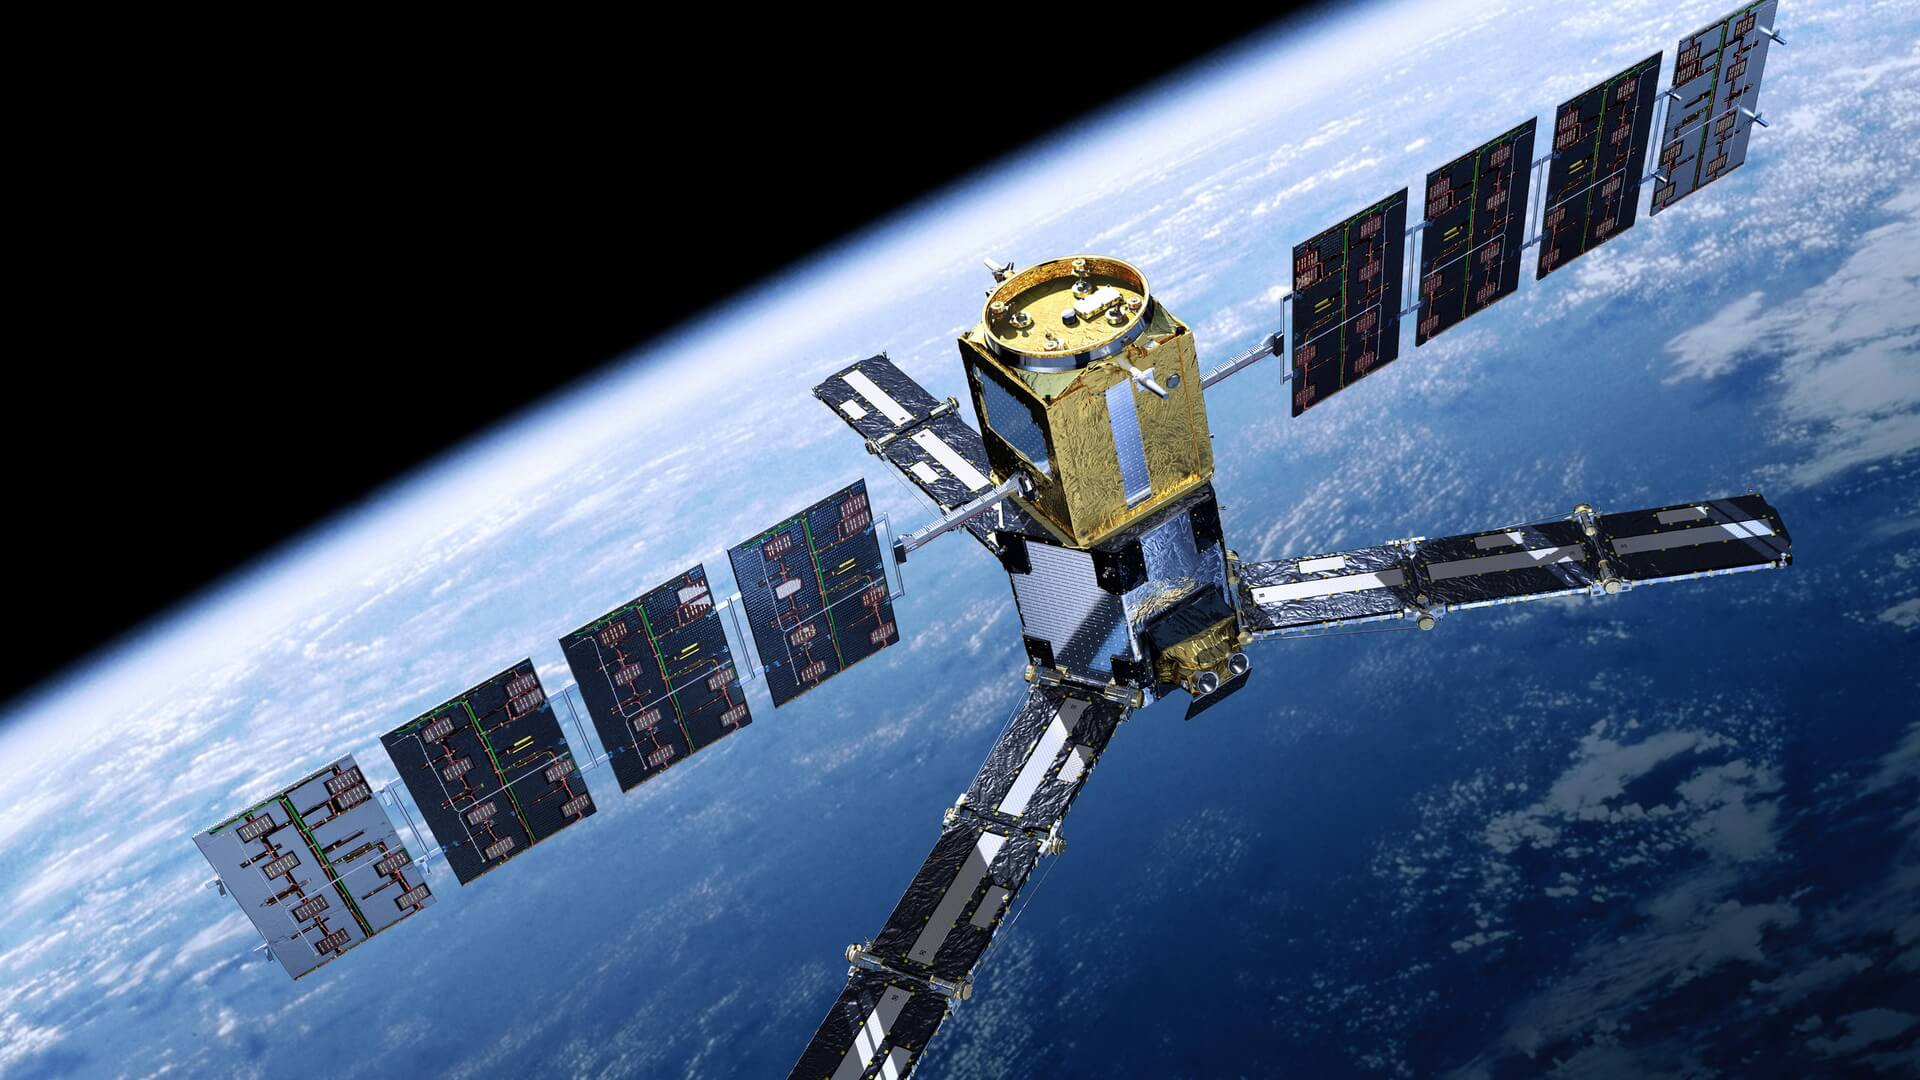 UK is looking to build its own version of GPS upon exit from European Union